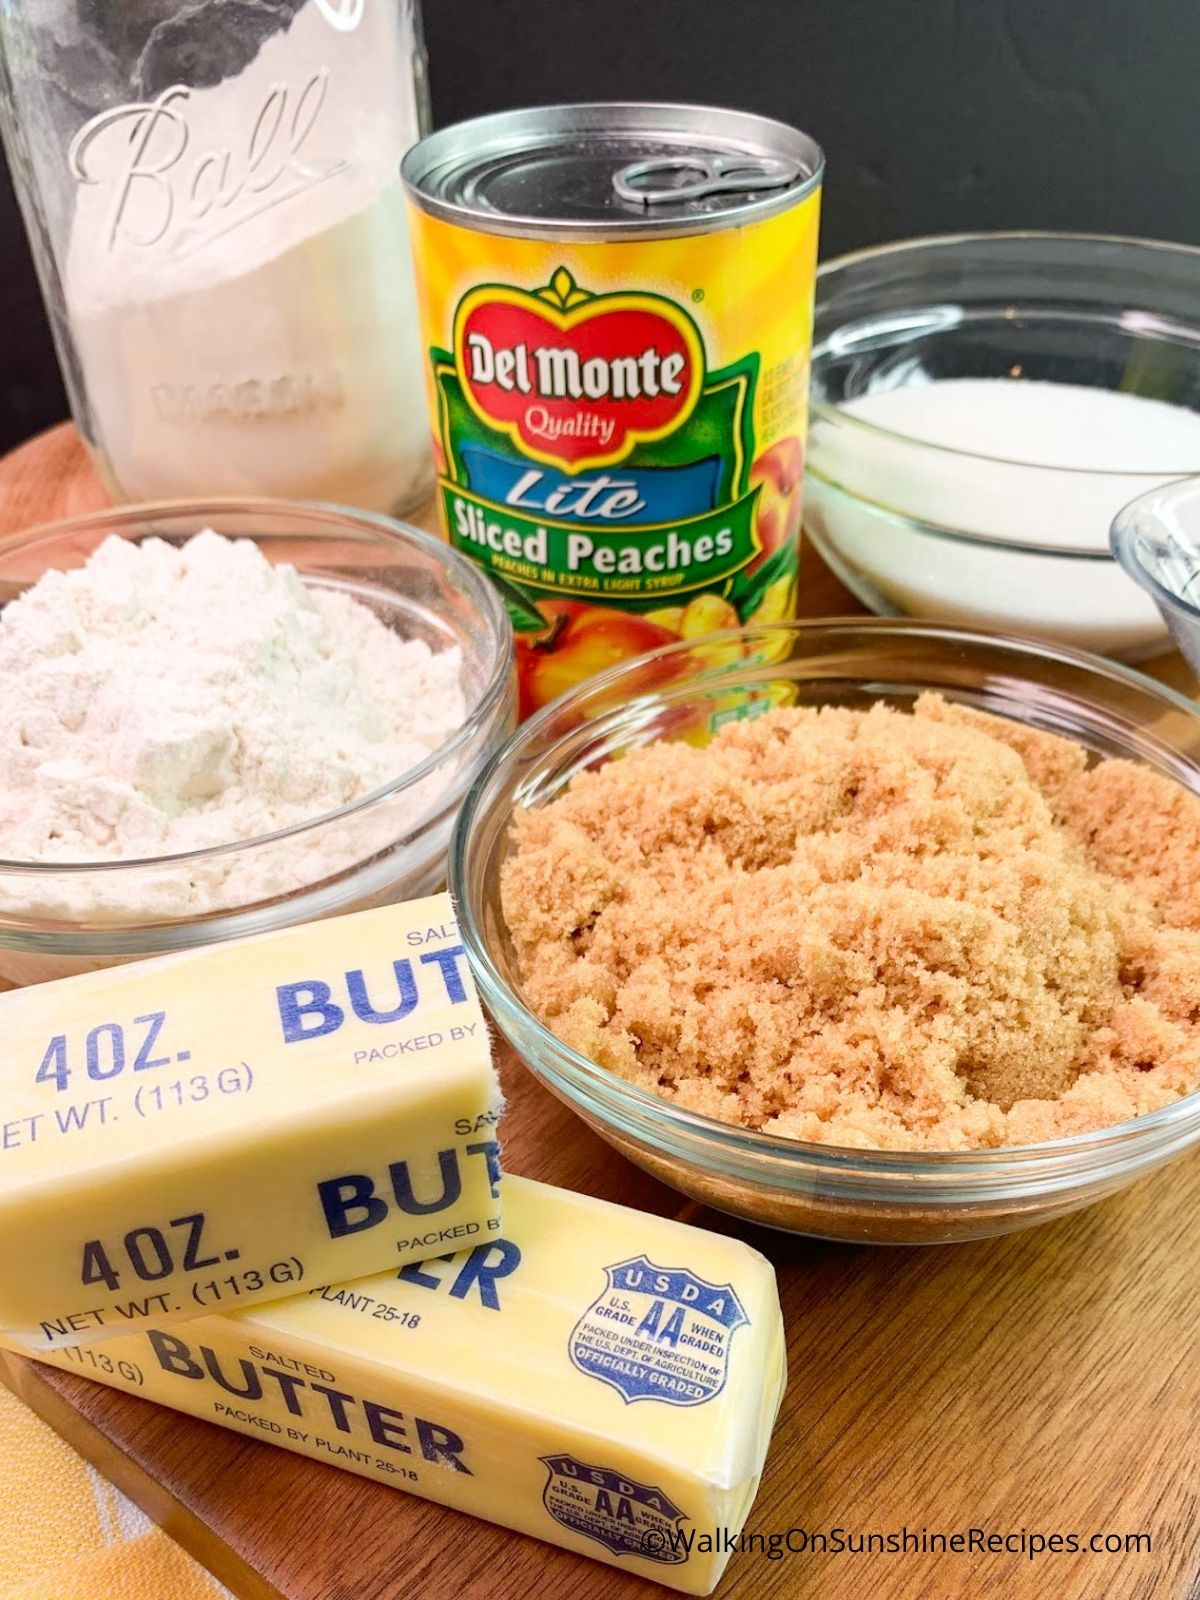 Ingredients for Peach Cobbler with Brown Sugar Crumble